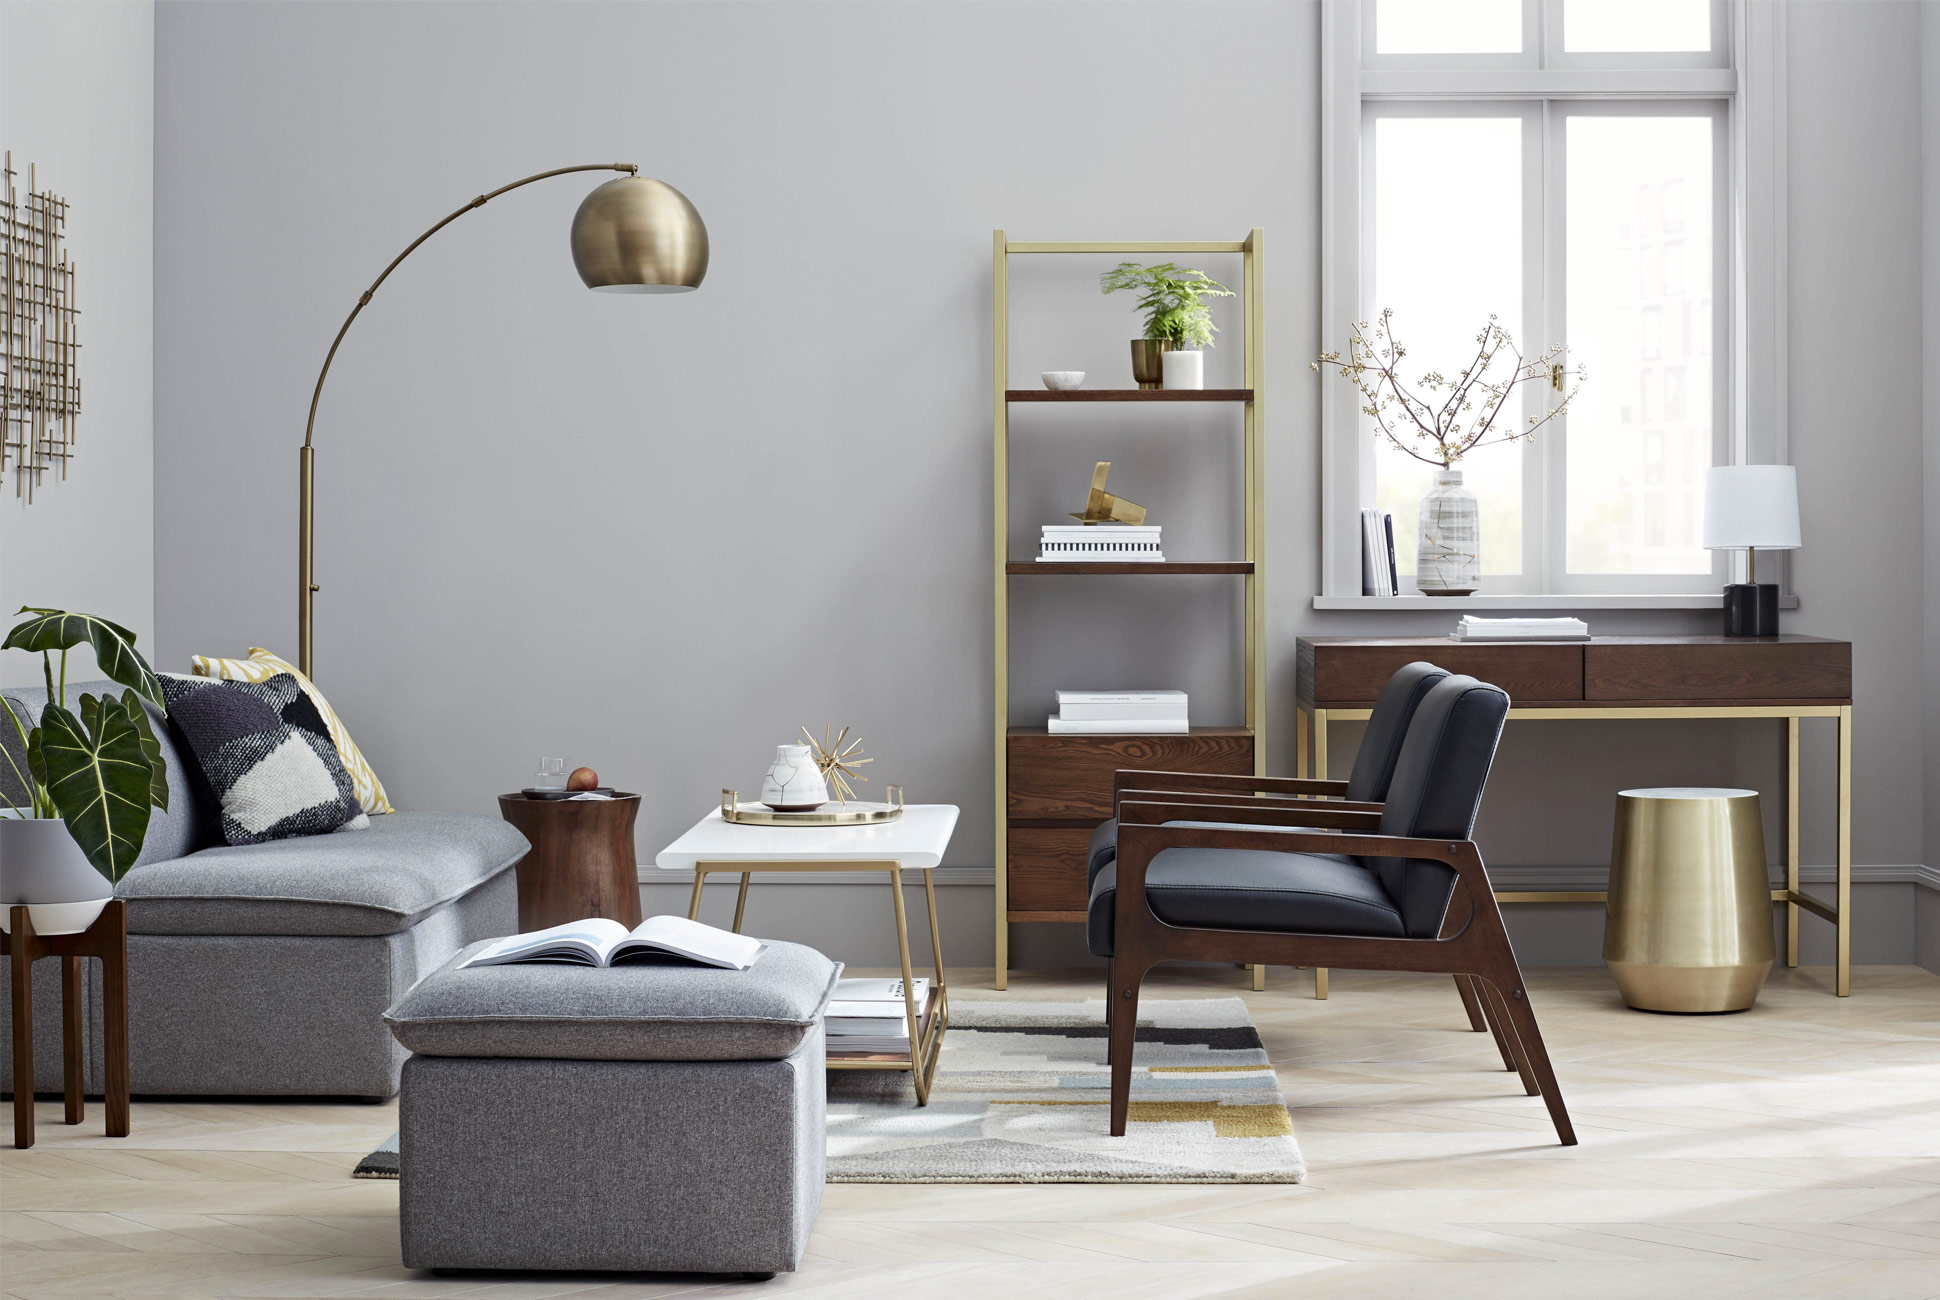 target launches small space mid century furniture line gear patrol project lead full accent table hopping aboard the design train designed with spaces mind piece collection dubbed